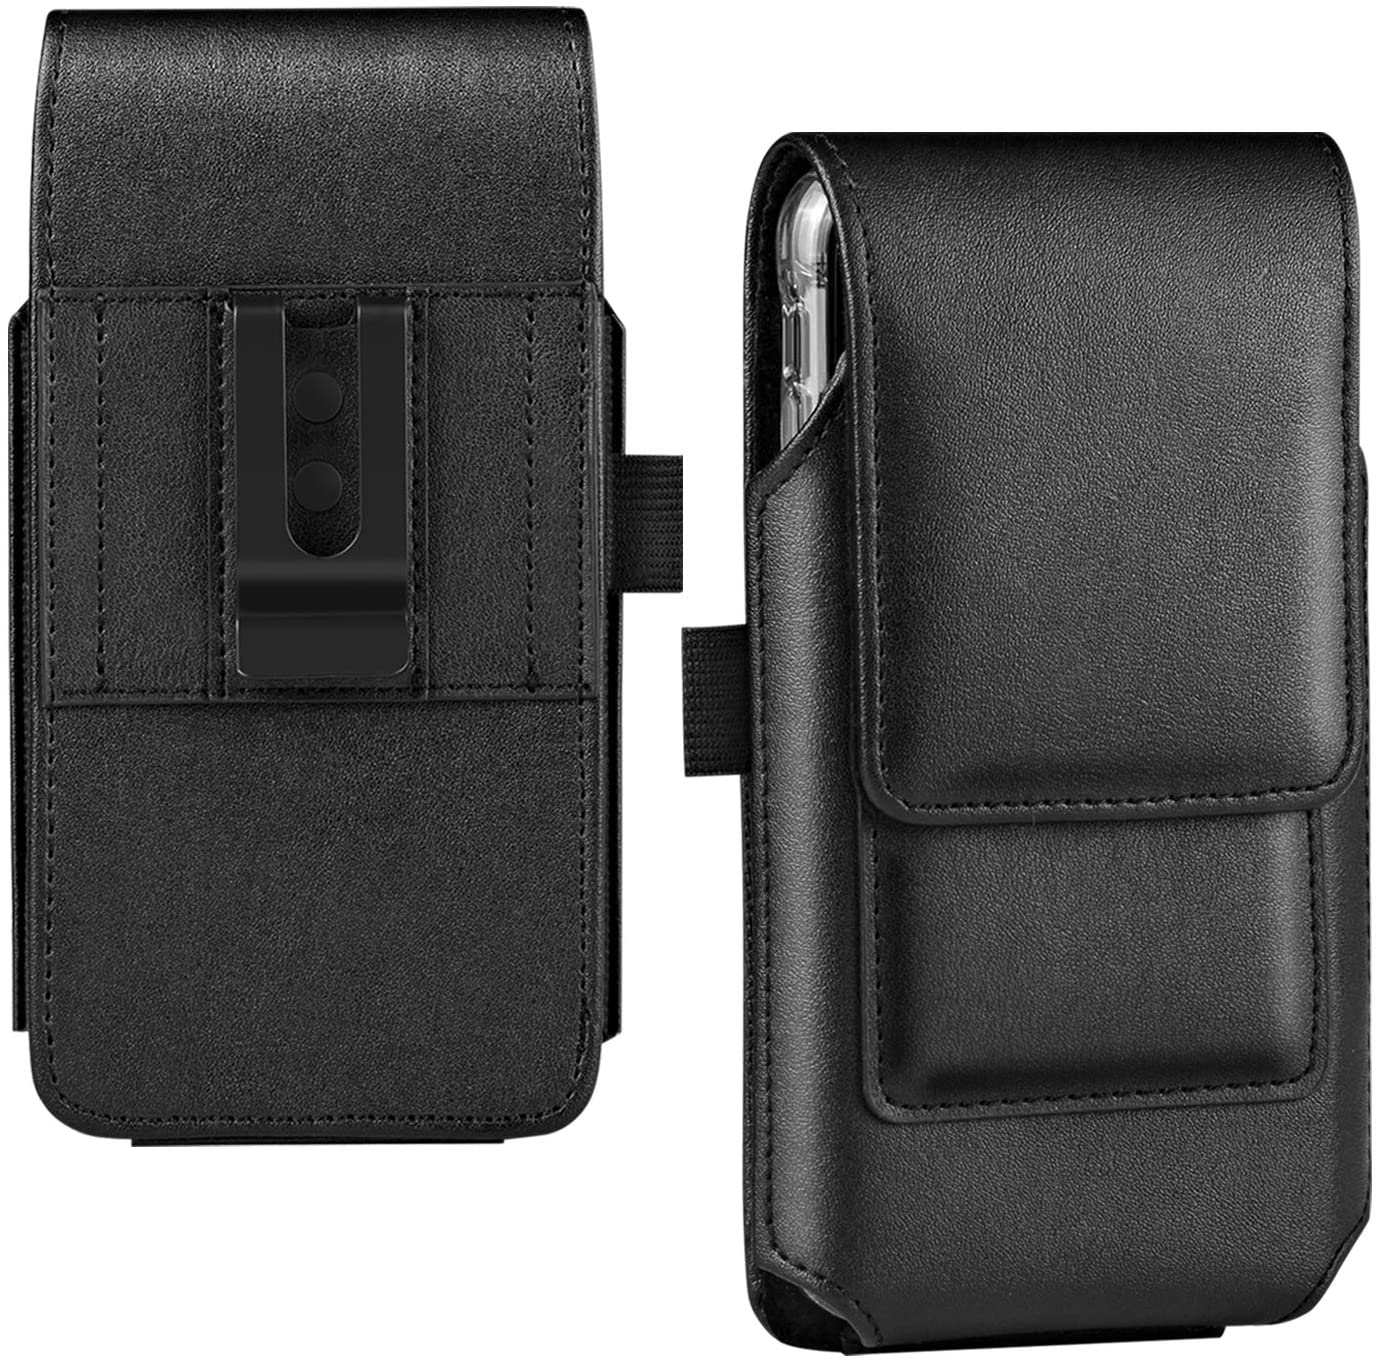 BECPLT Galaxy Note 10 Holster Black Mobile Phone Belt Pouch Holster Cover Belt Clip Case Pouch for Samsung Galaxy Note 10 /Galaxy S10 /Galaxy S9 (Fit w/Thin Case on) -Black